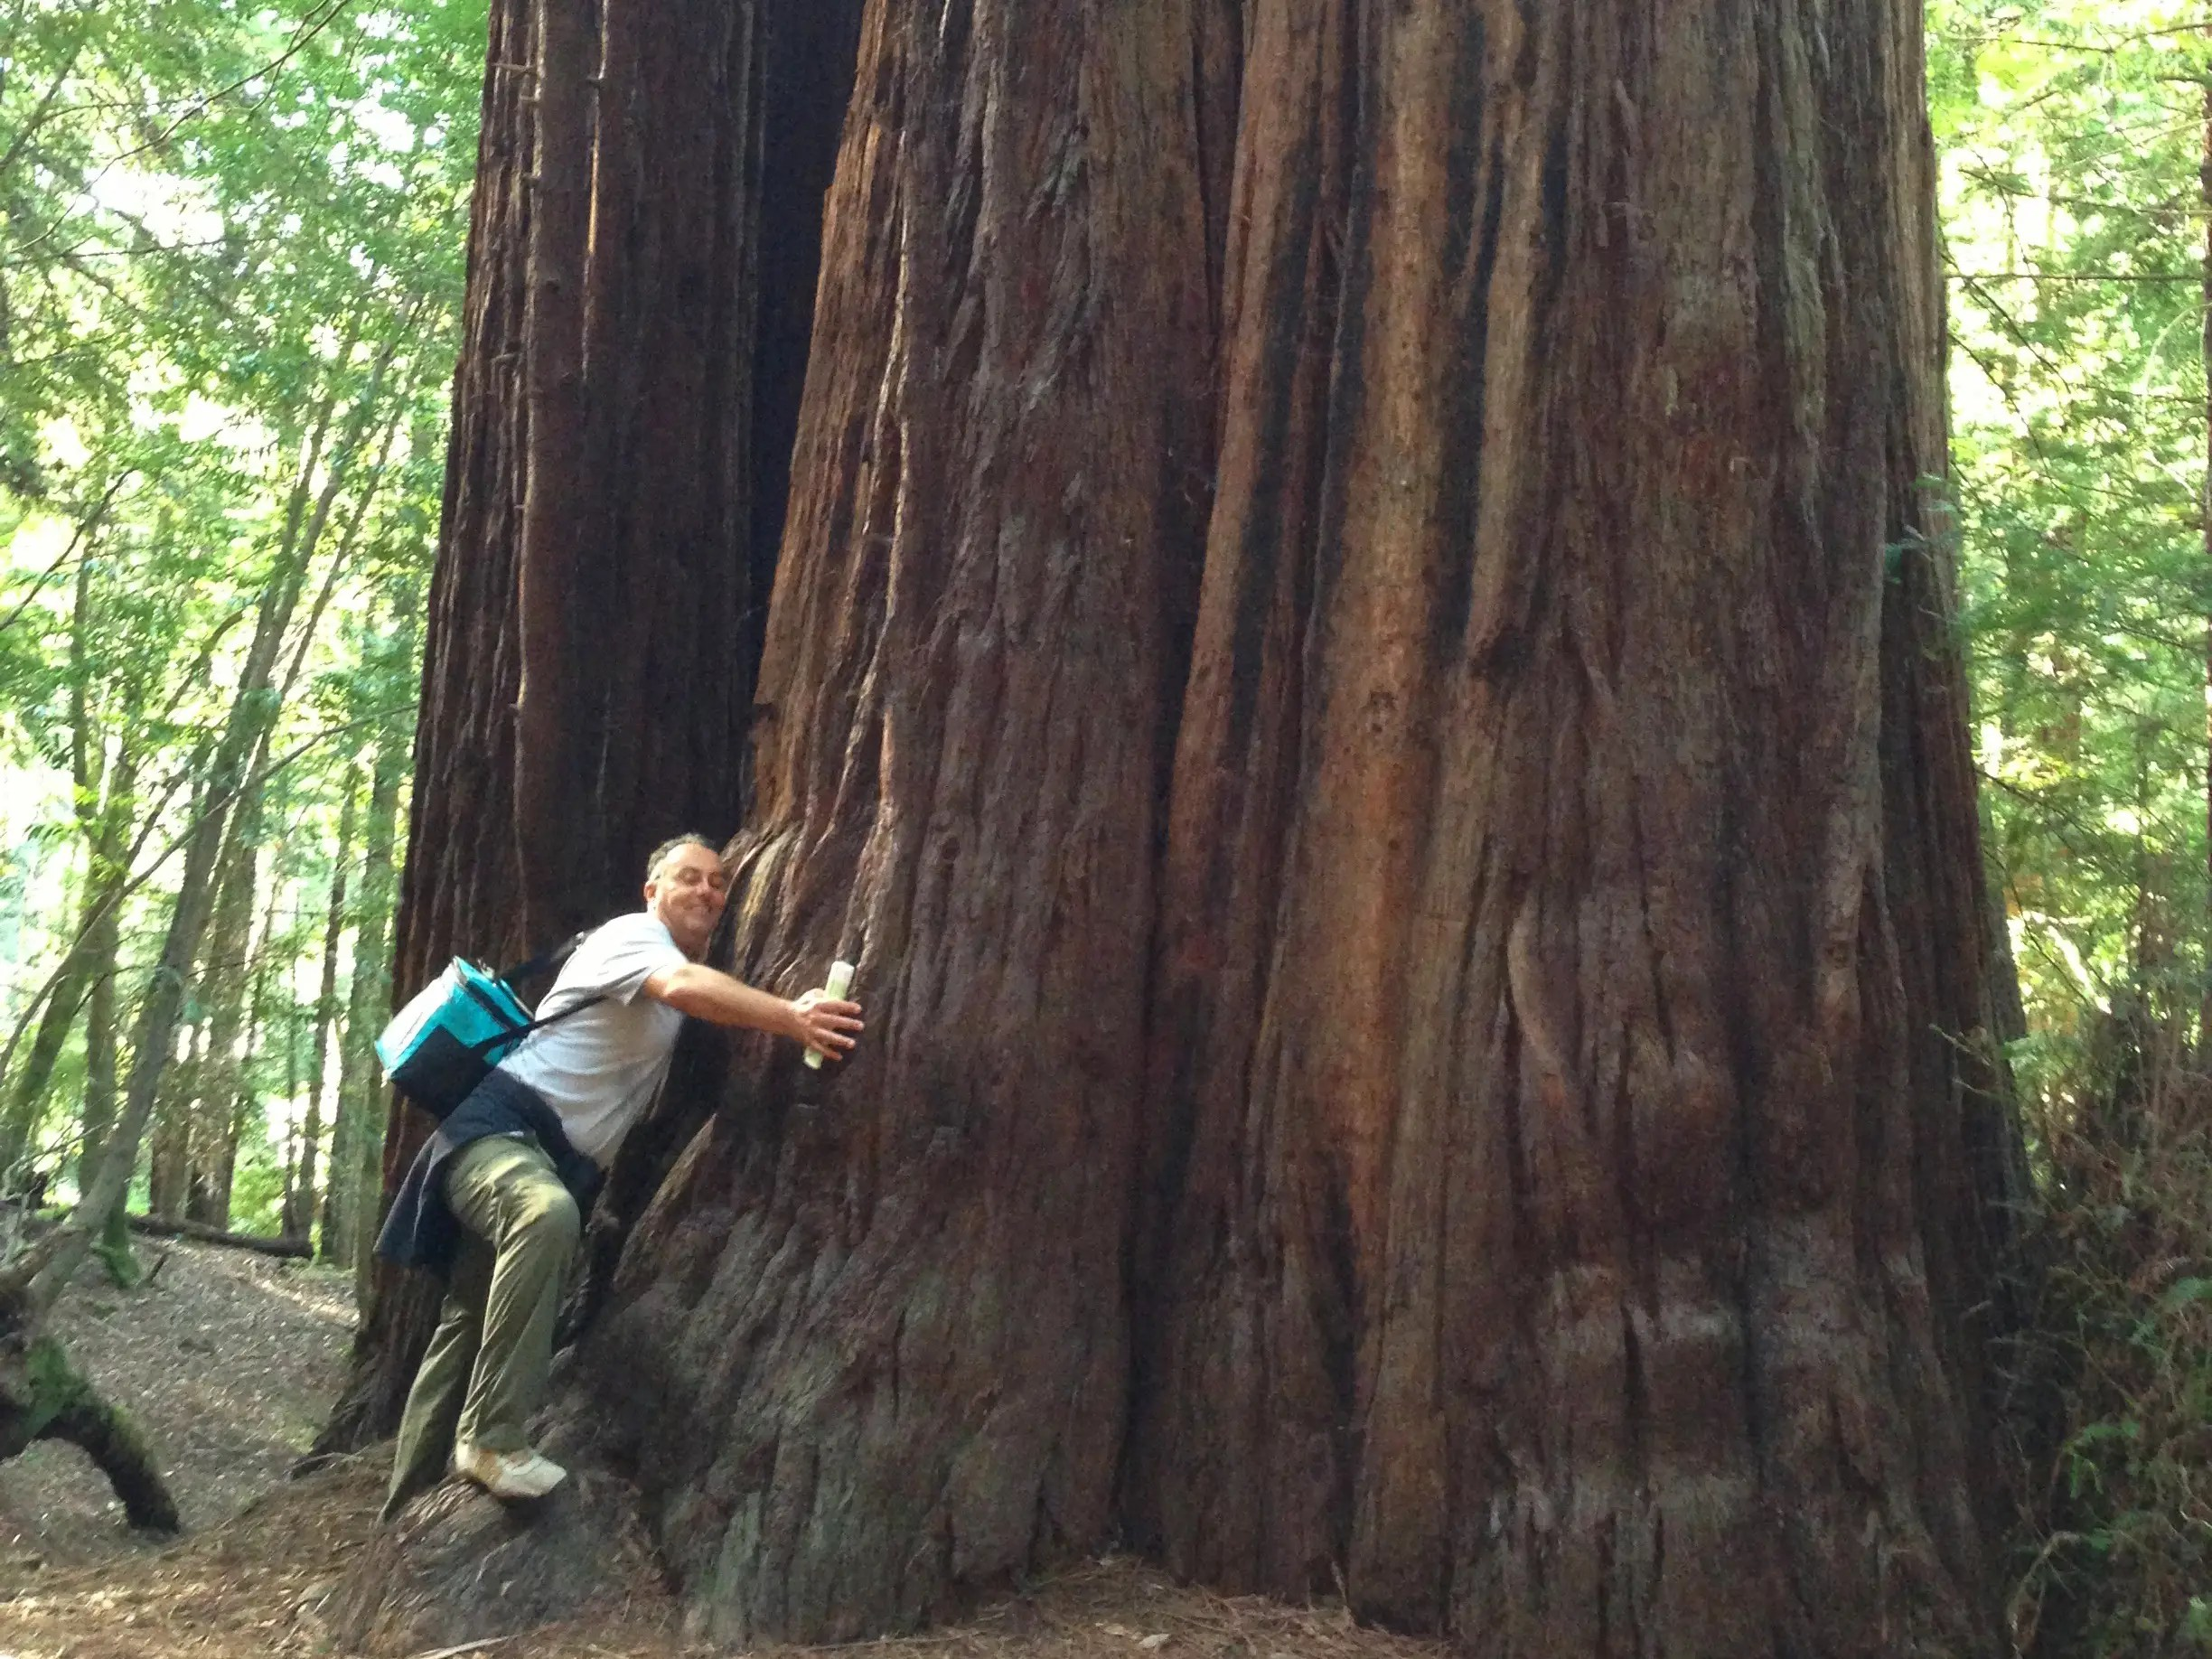 Attempt to hug a giant Redwood tree in Northern California.